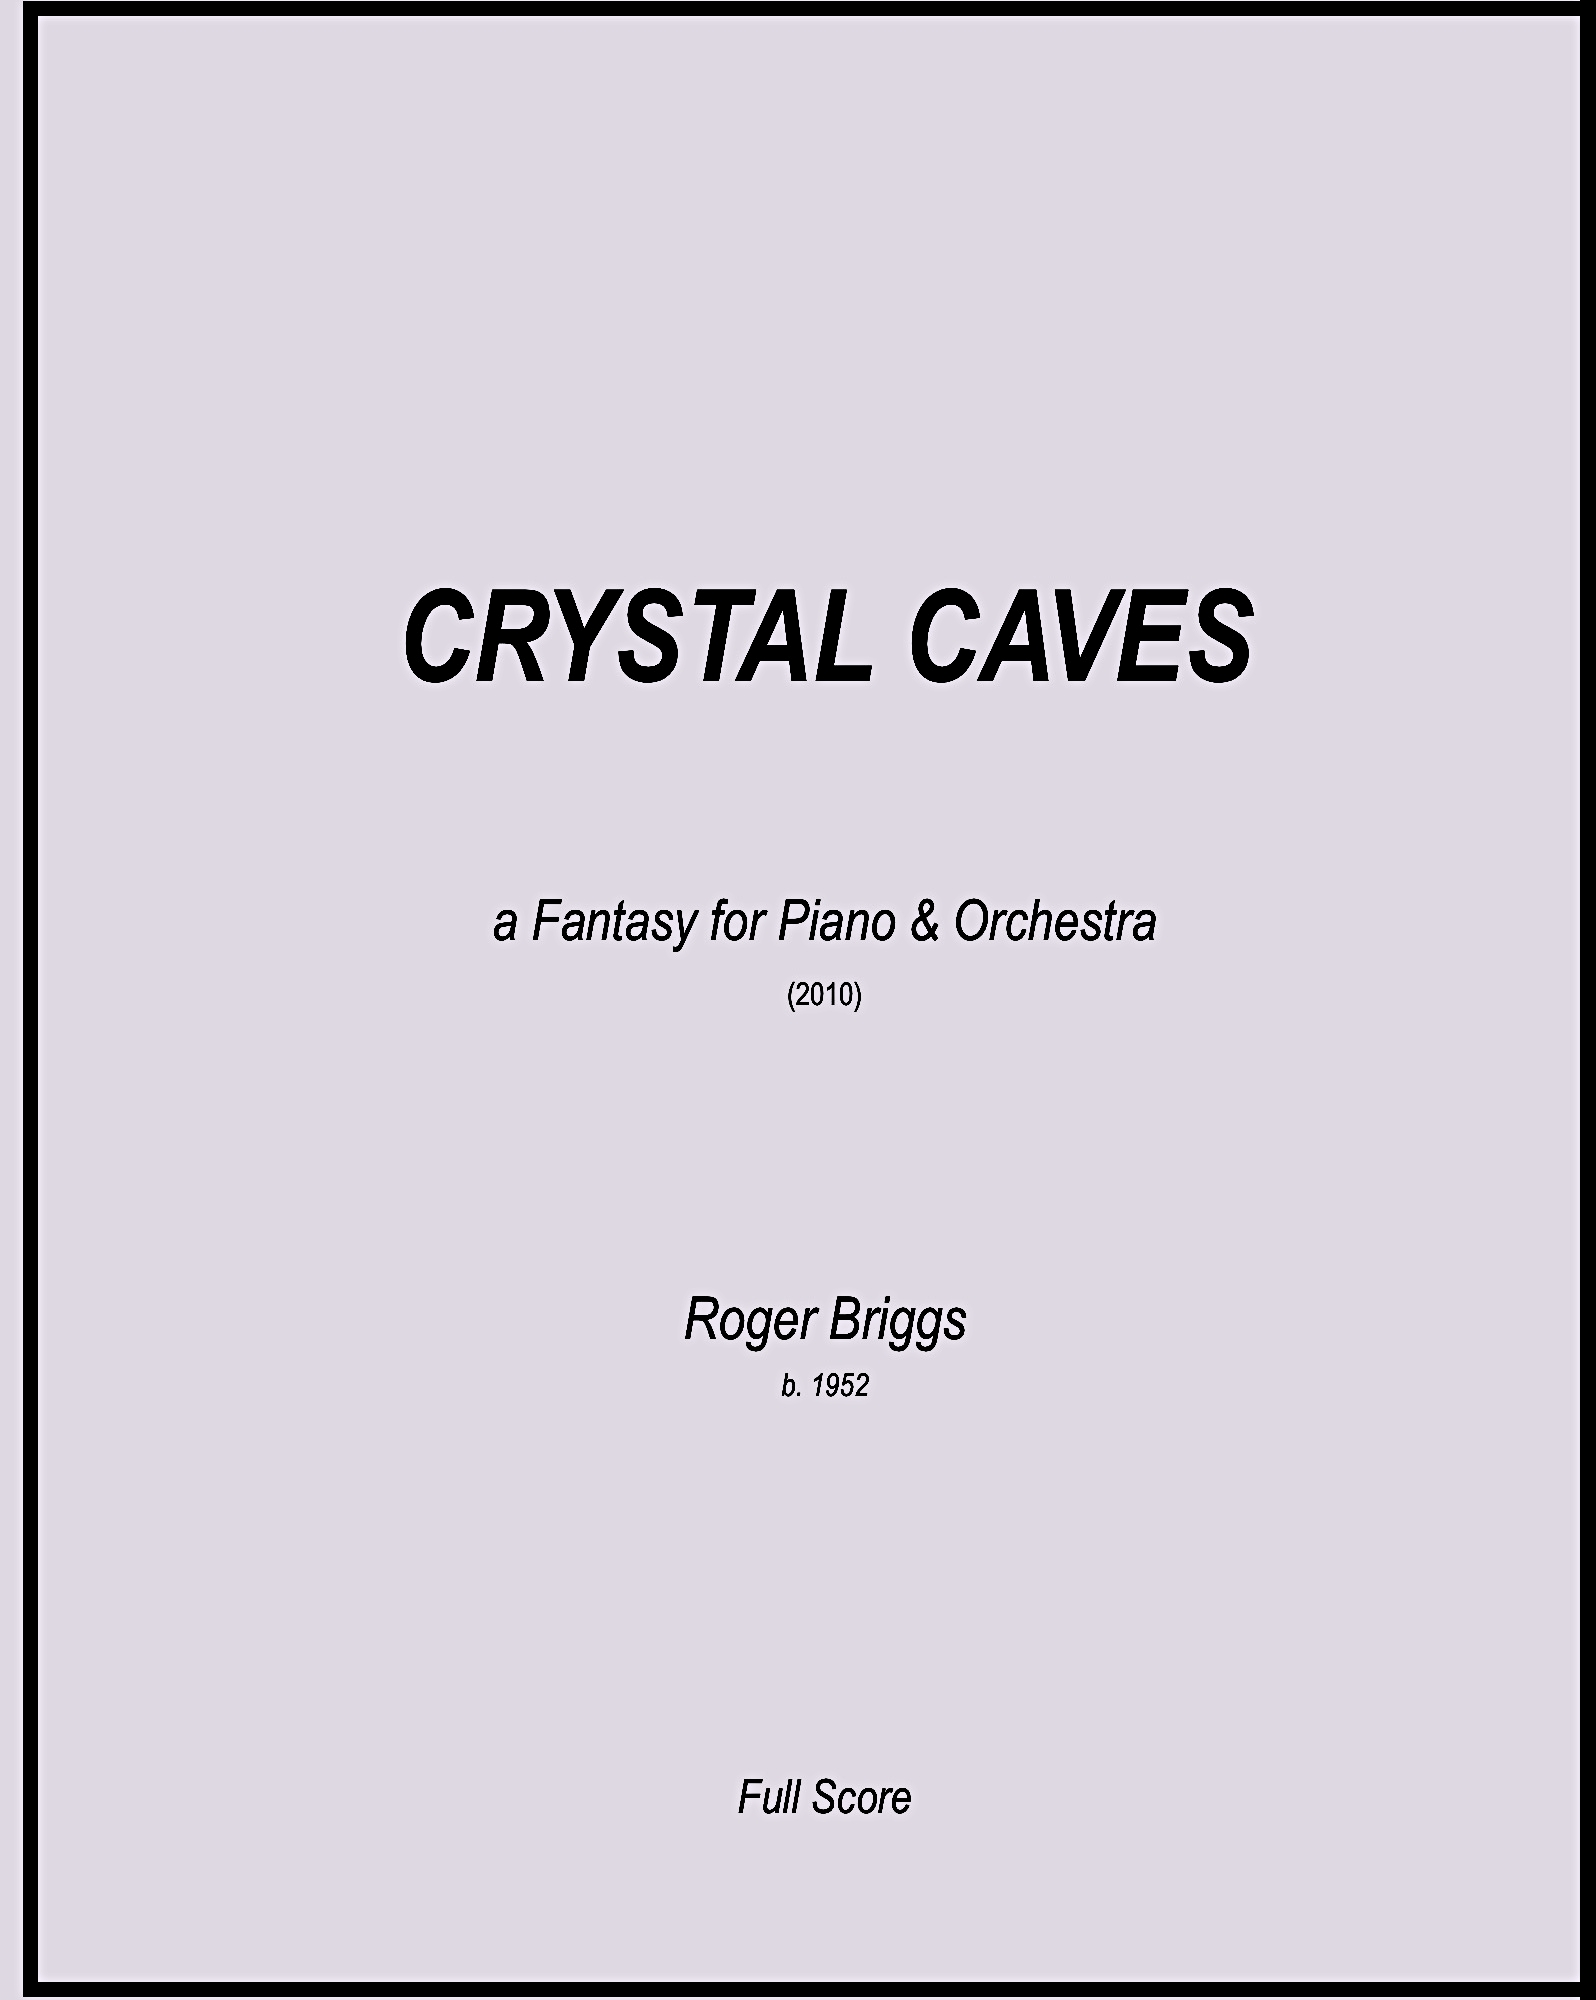 CRYSTAL CAVES p1.jpg